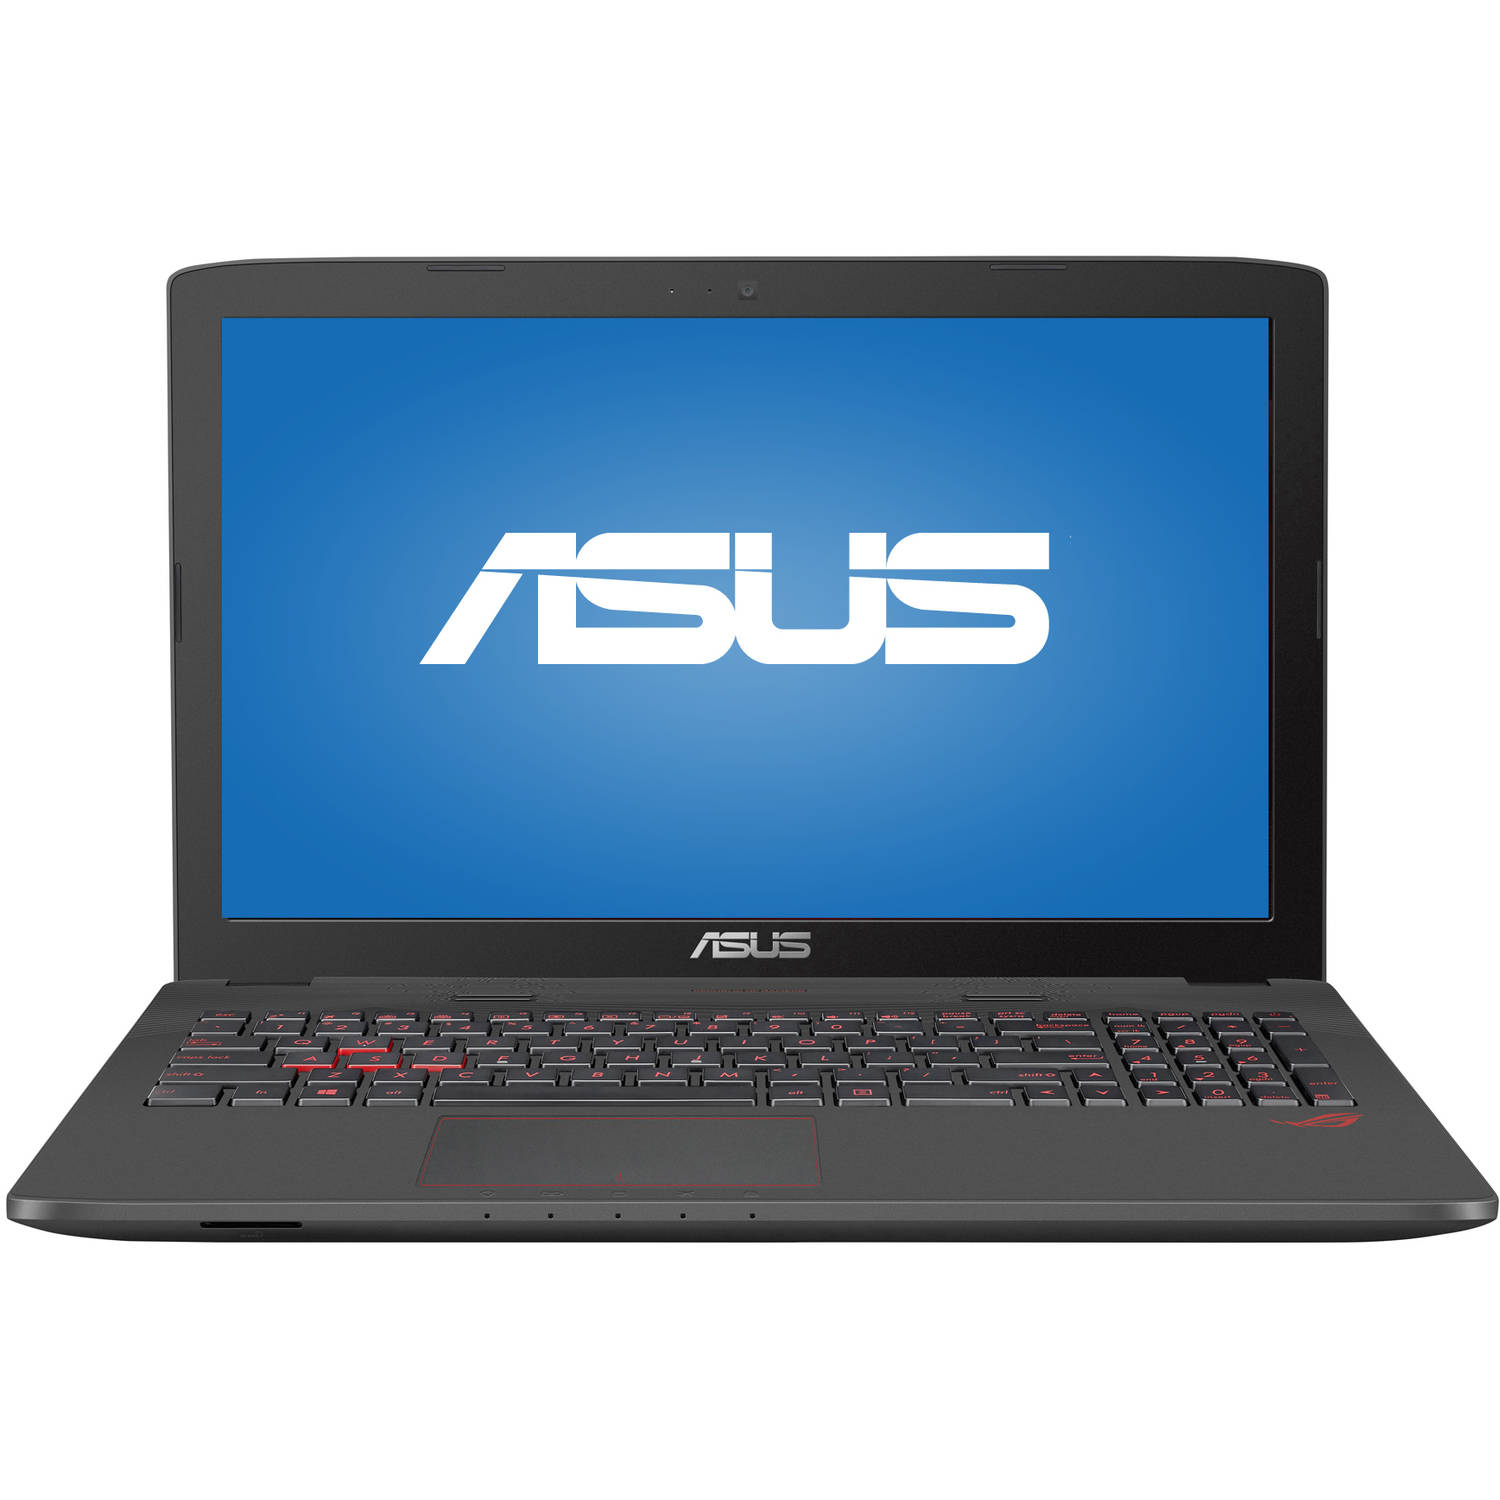 "ASUS Metallic 17.3"" GL752VW-DH74 Laptop PC with Intel Core i7-6700HQ Processor, 16GB Memory, 1TB Hard Drive and Windows 10"